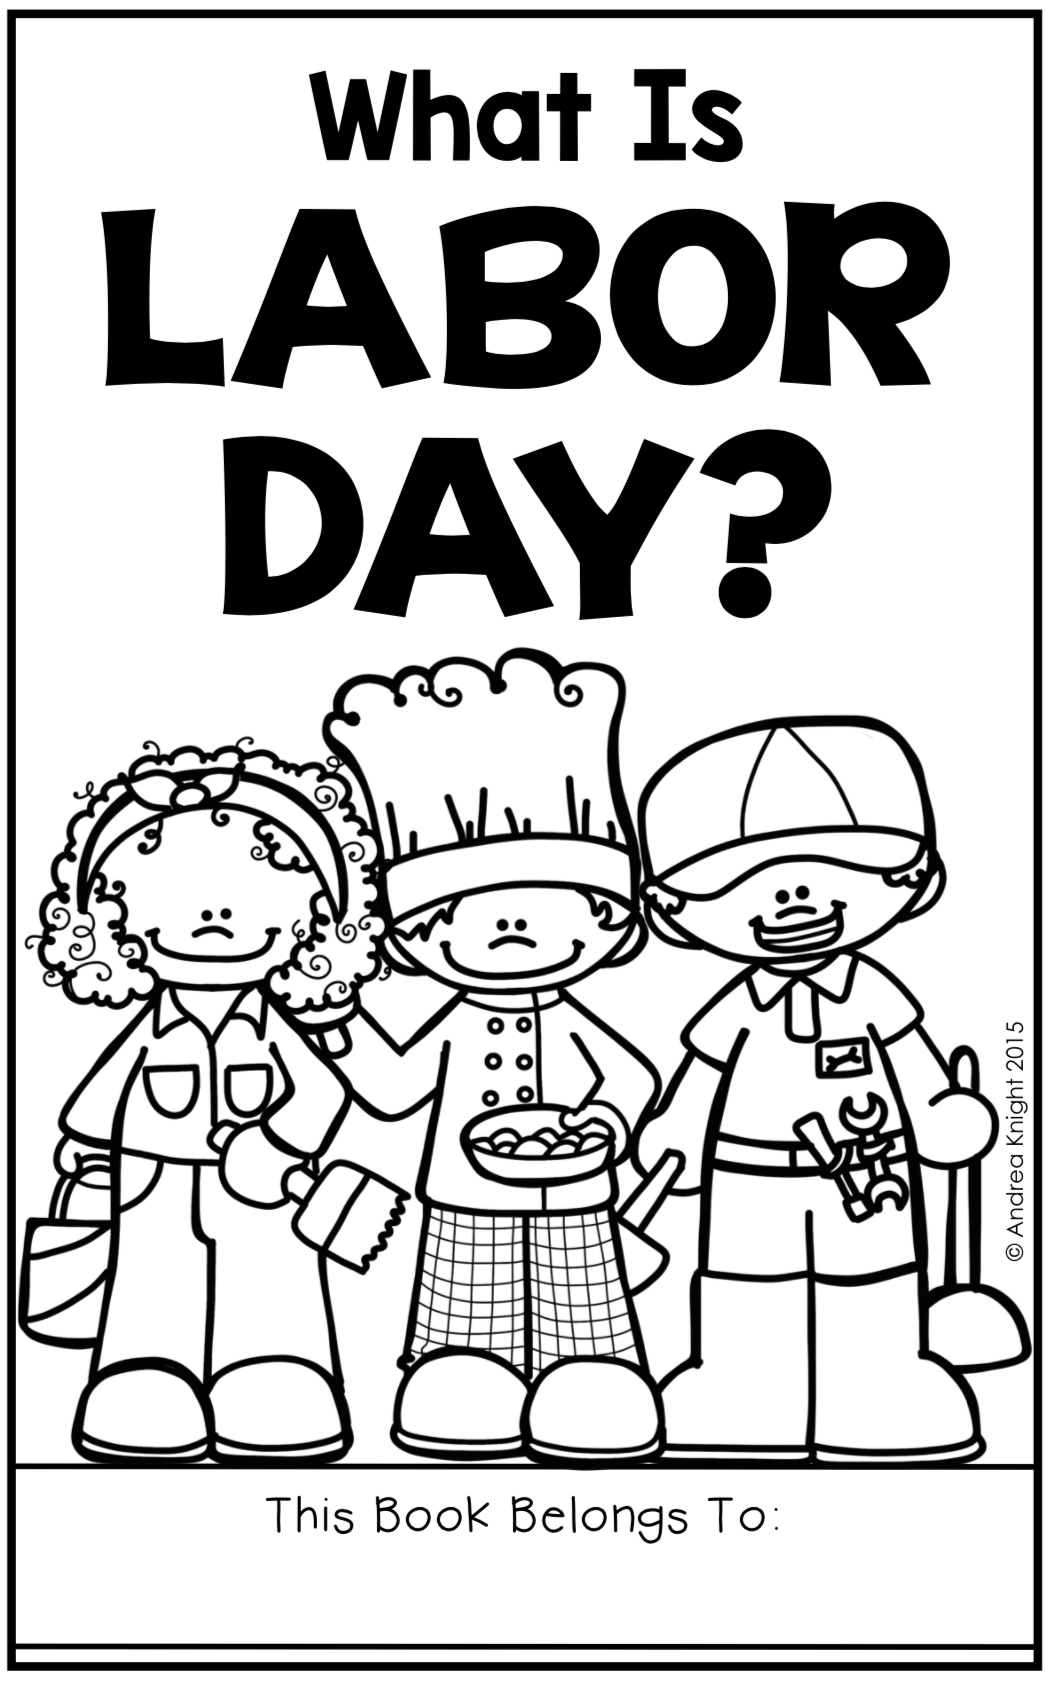 Labor Day A Holiday Book And Assessment For Primary